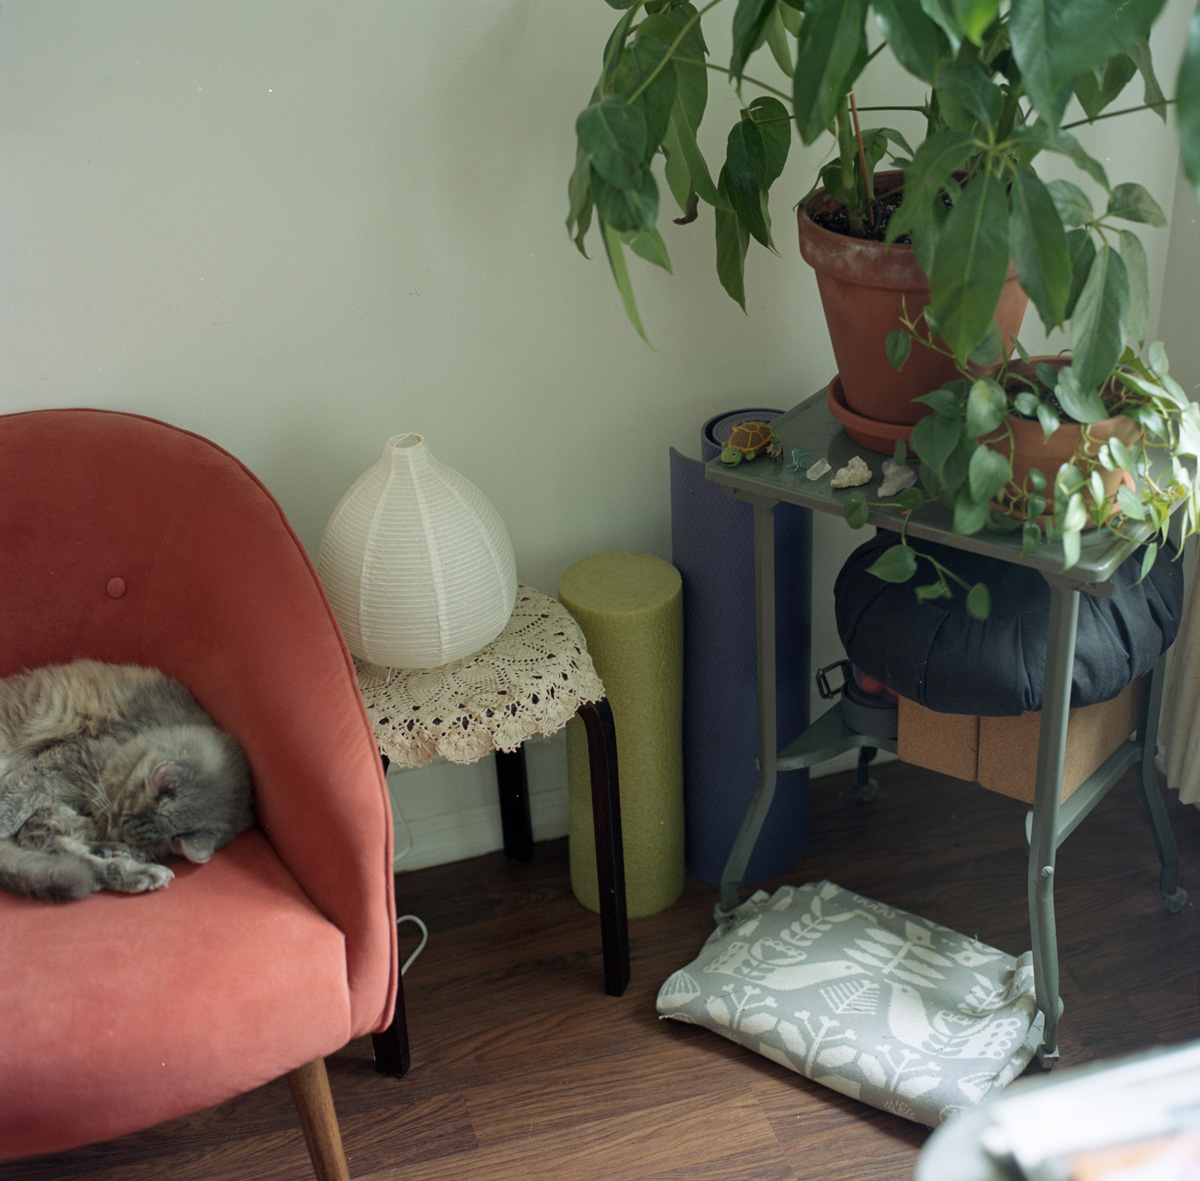 Fluffy gray cat curled on coral-colored armchair next to lamp with paper shade, potted plants, and yoga equipment